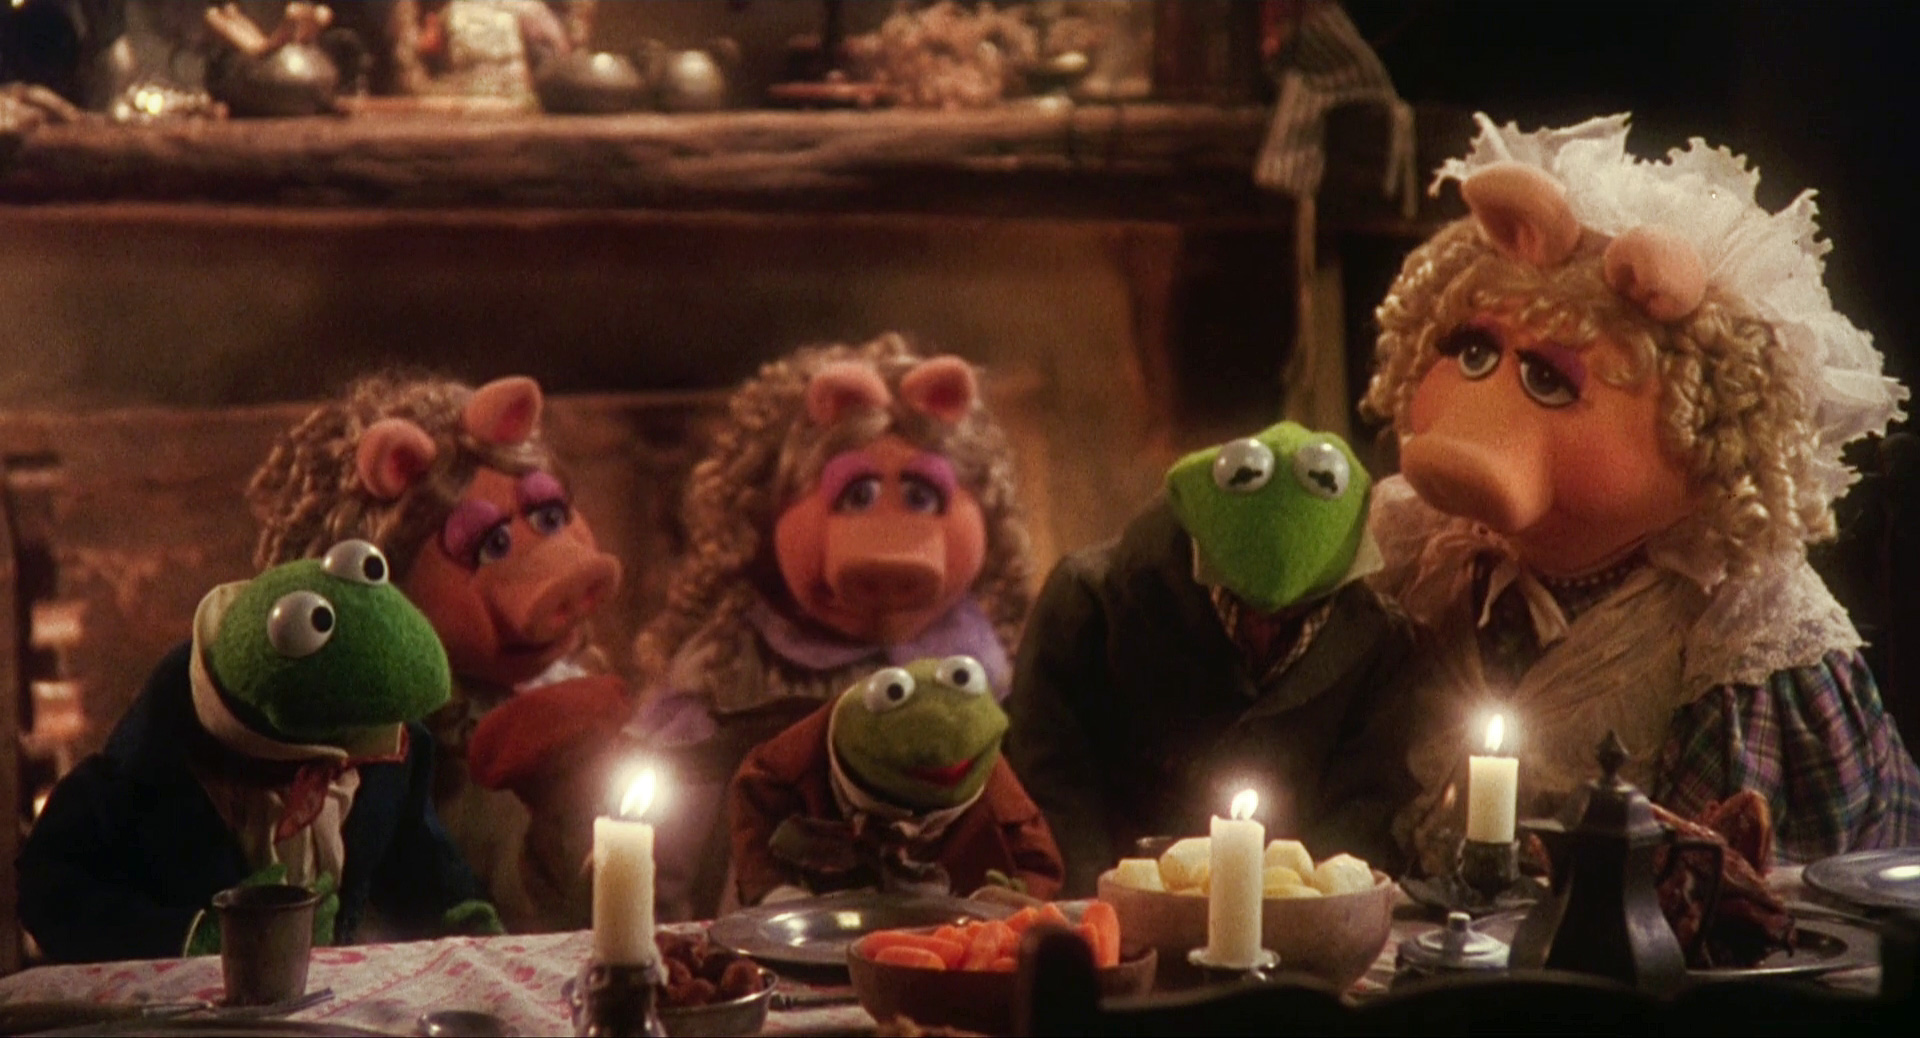 The Muppet Christmas Carol Trailer 1992.Holiday Film Series The Muppet Christmas Carol The Athena